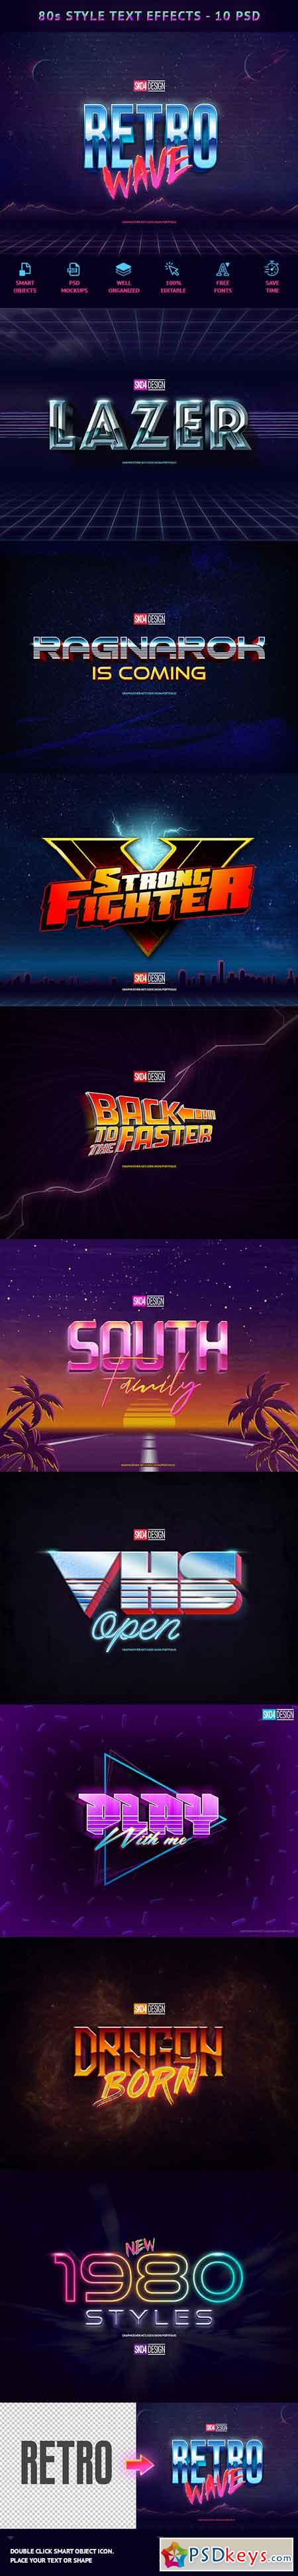 80s Text Effects - 10 PSD 21905525